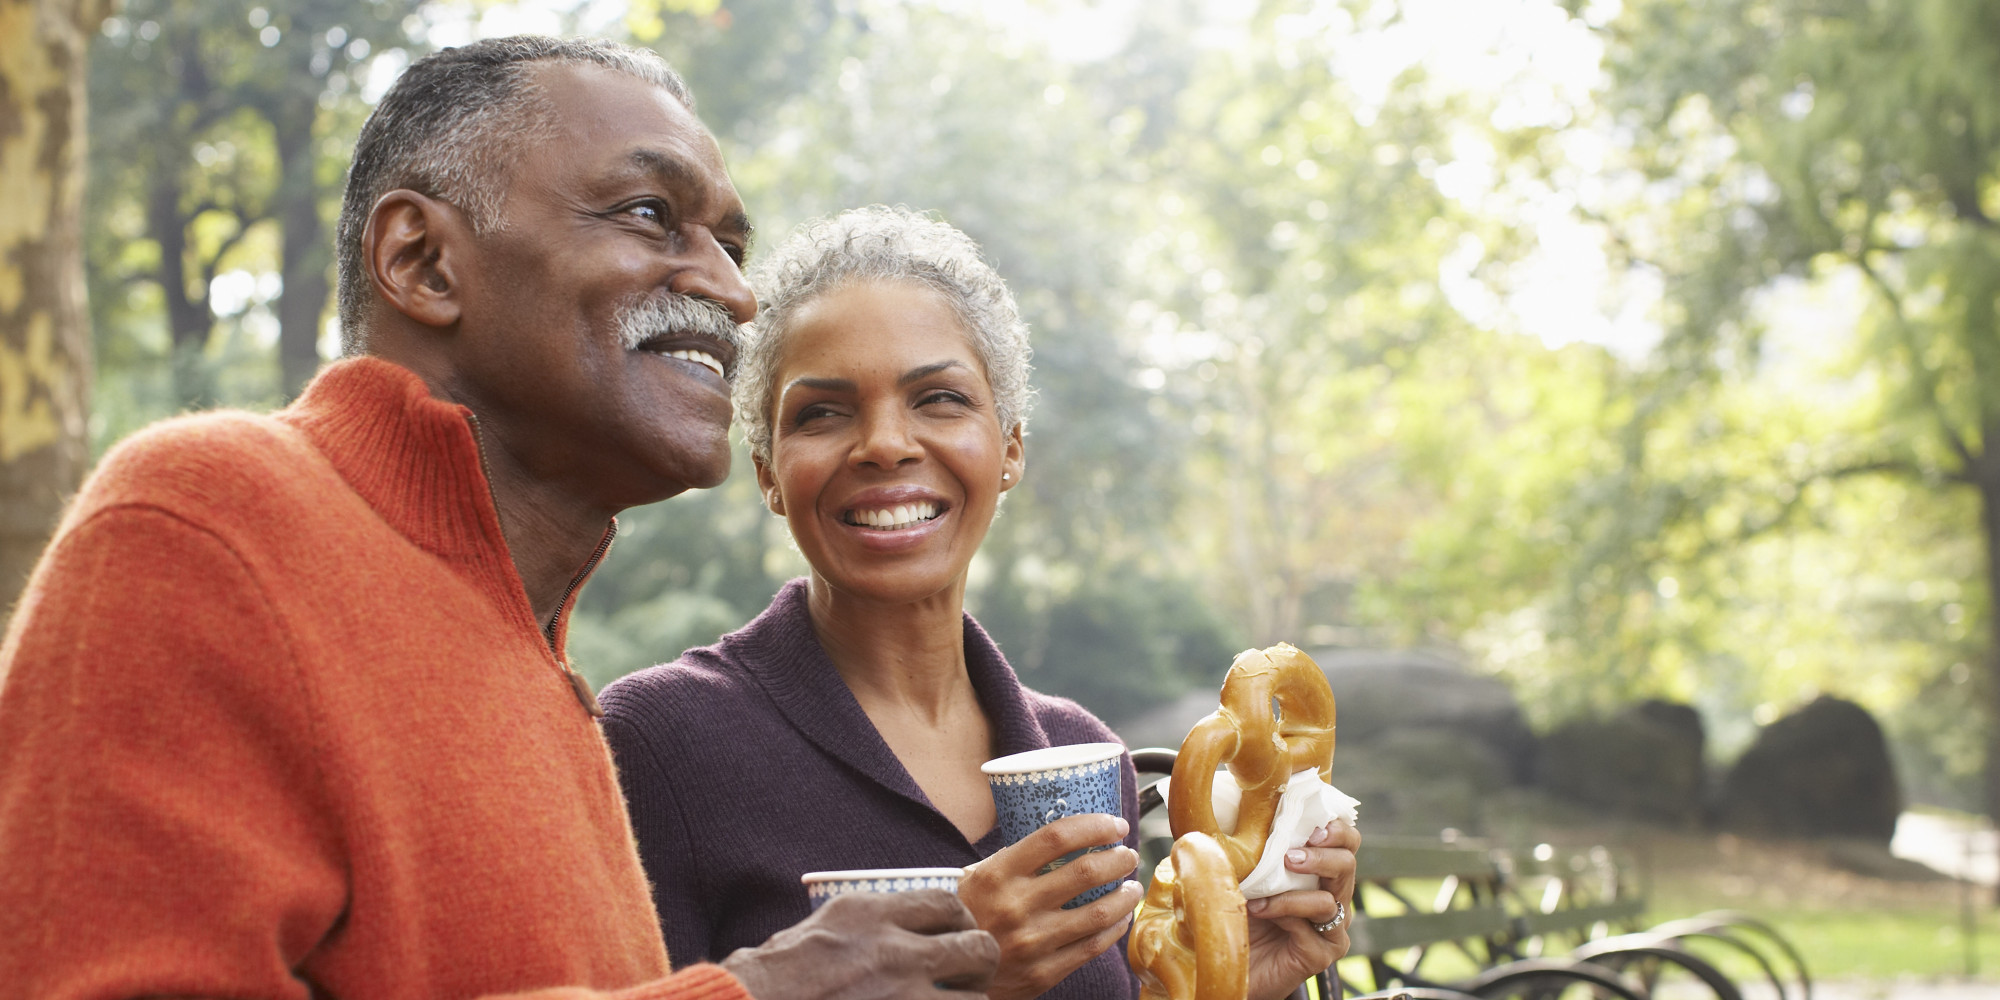 6 Facts About Aging Everyone Should Know But Doesnt